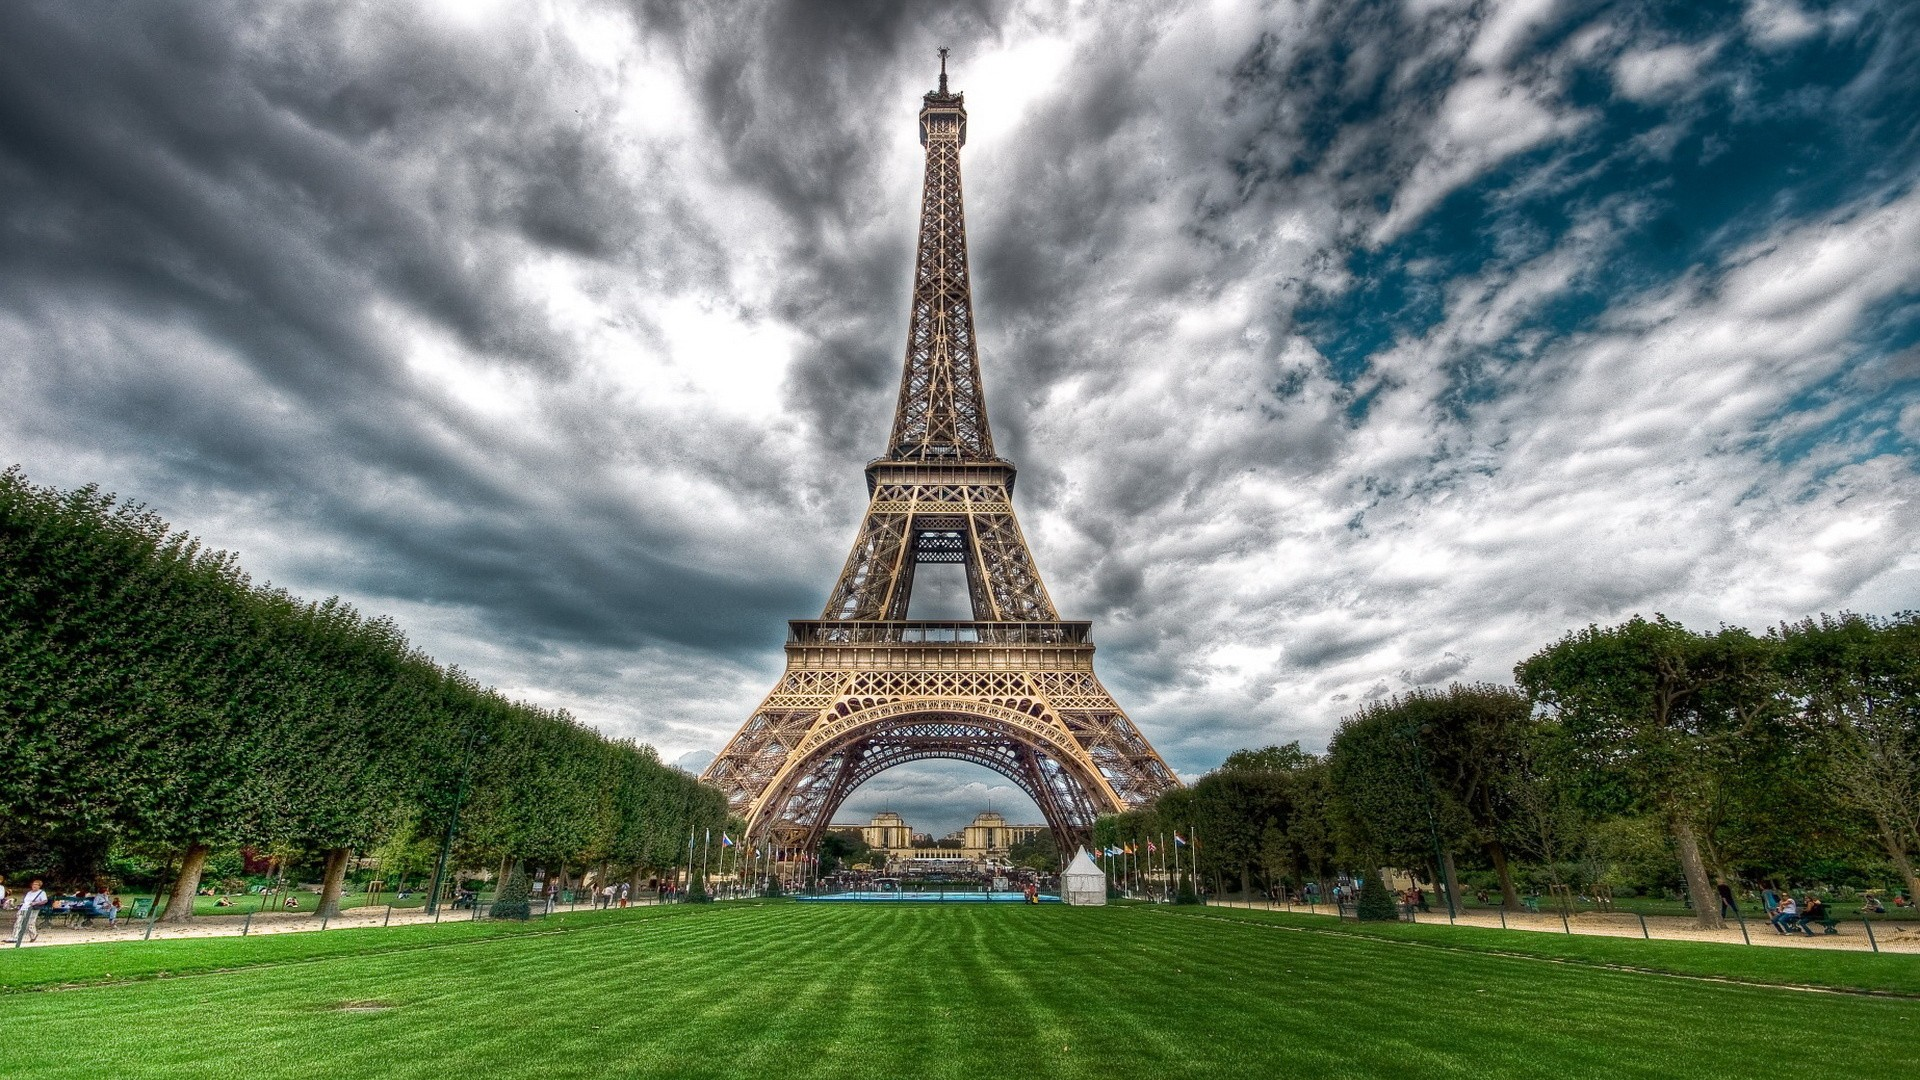 eiffel tower wallpaper - photo #14